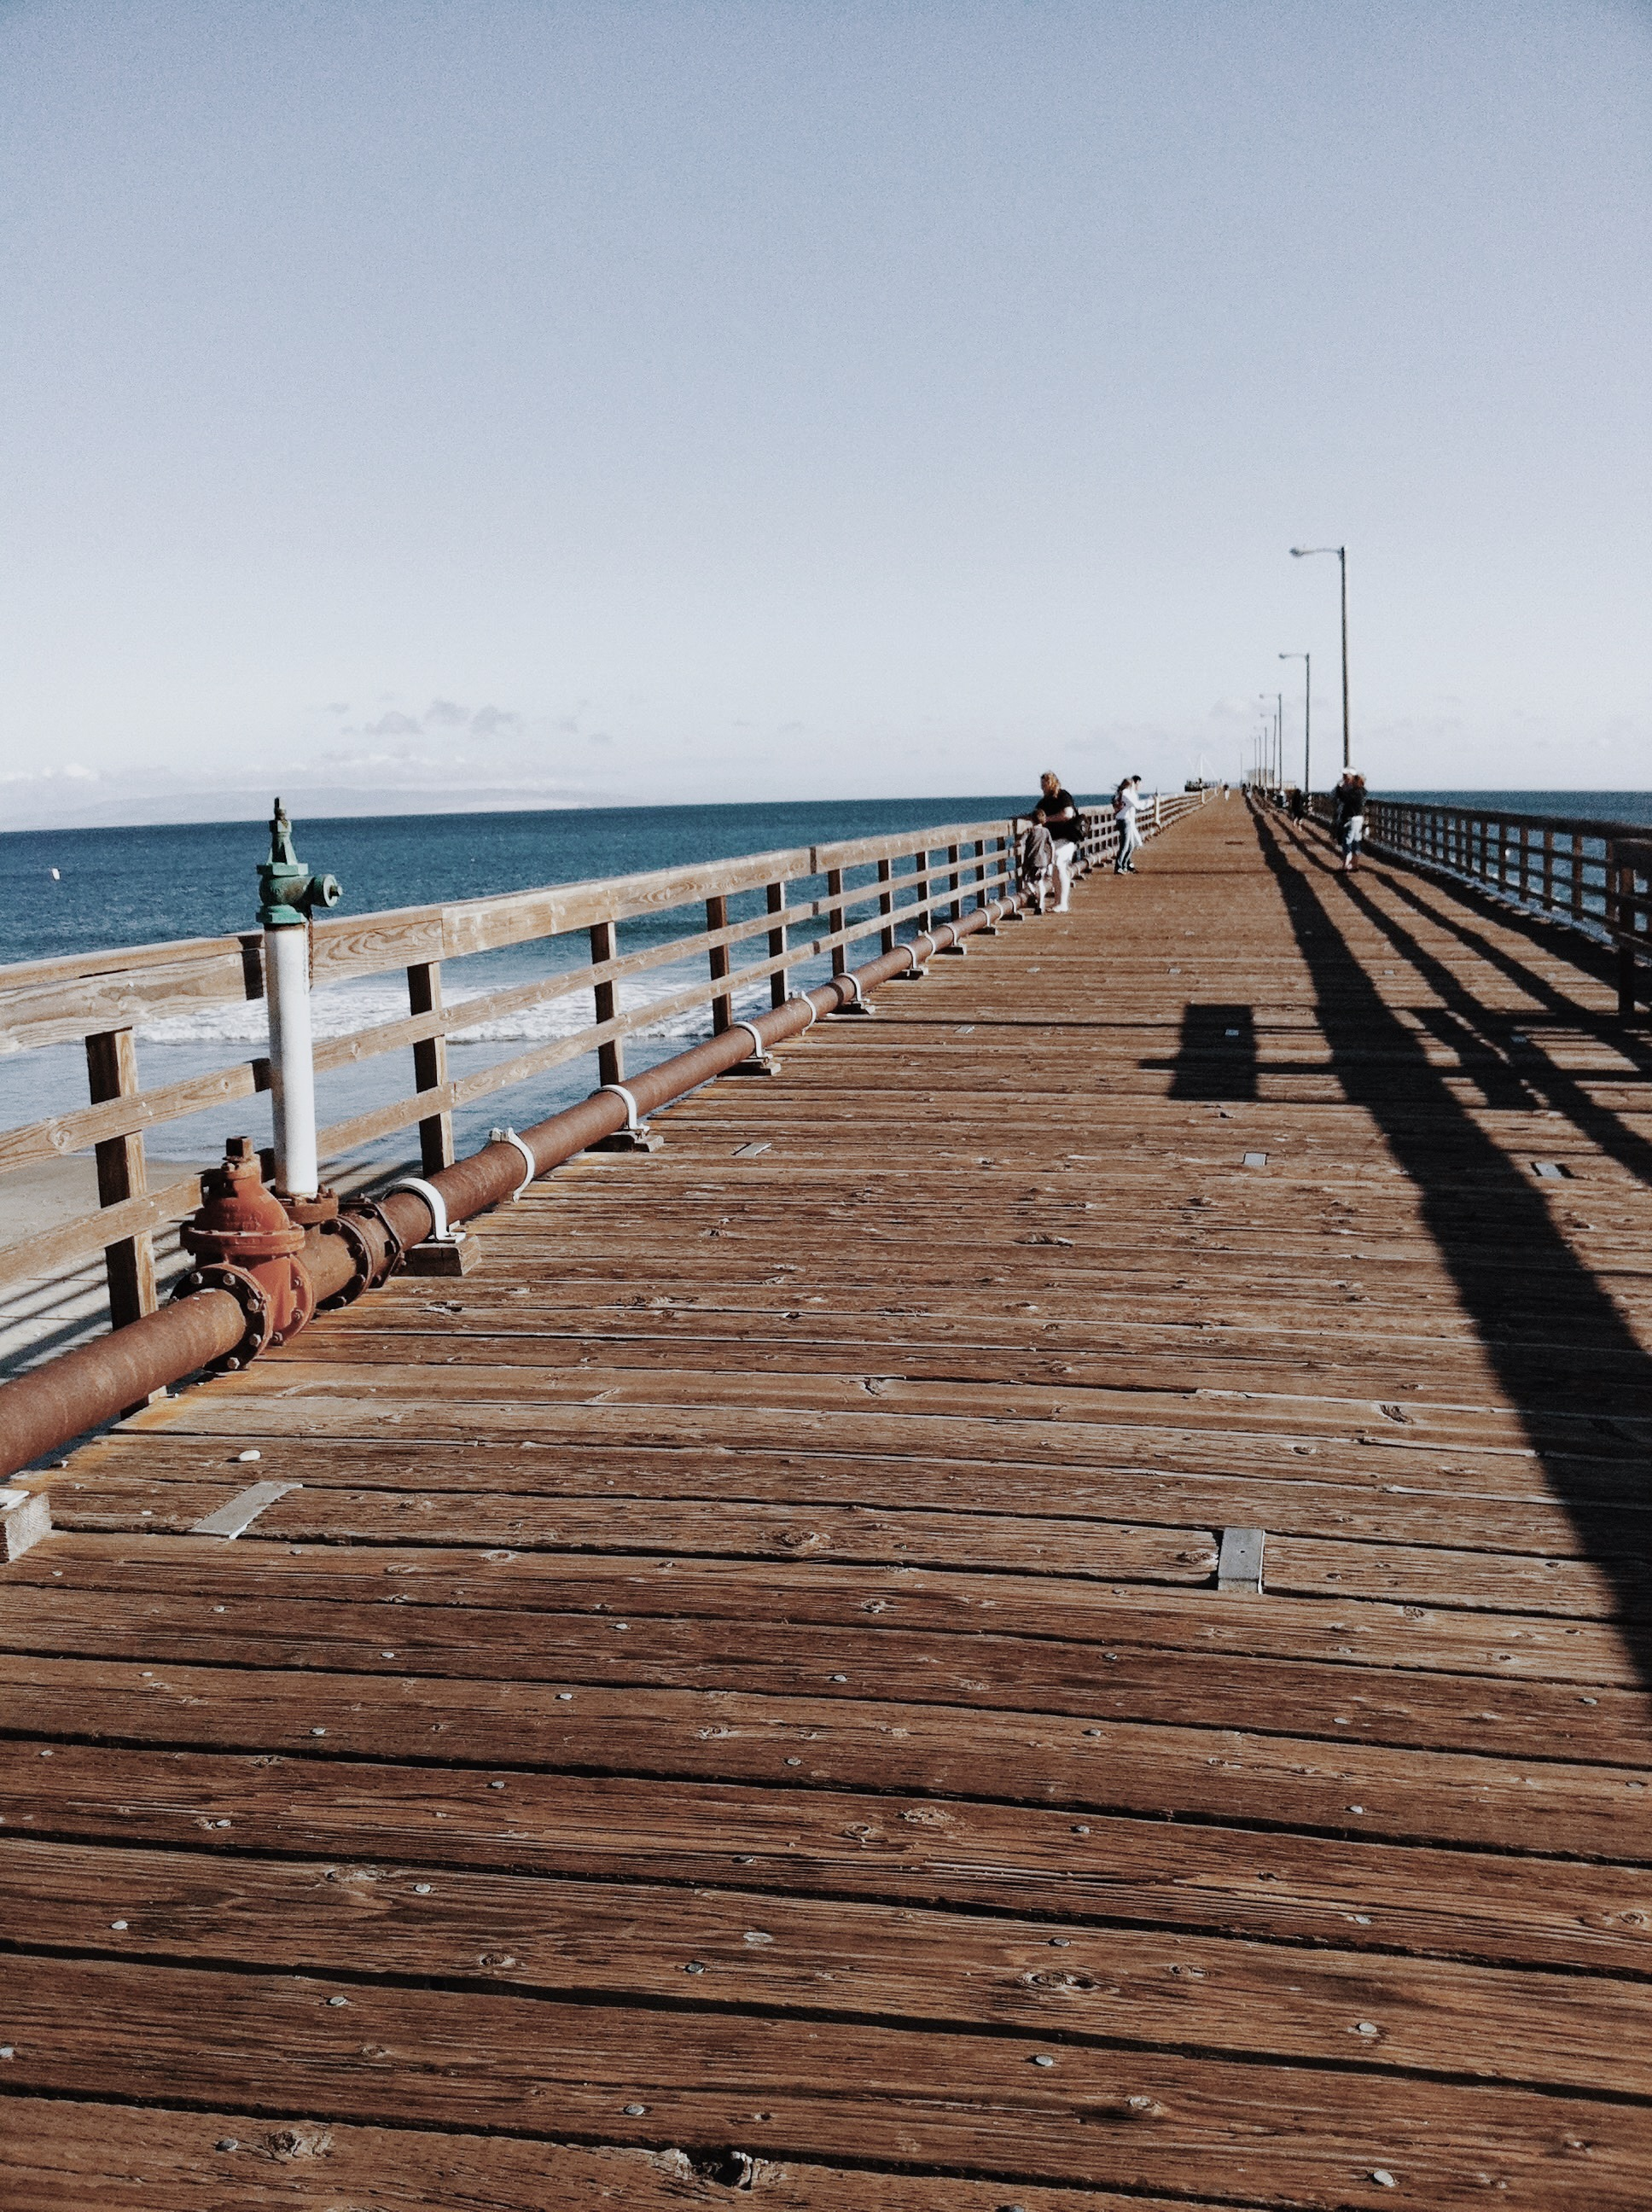 Enjoy a walk in the sand or on the pier at Avila Beach.